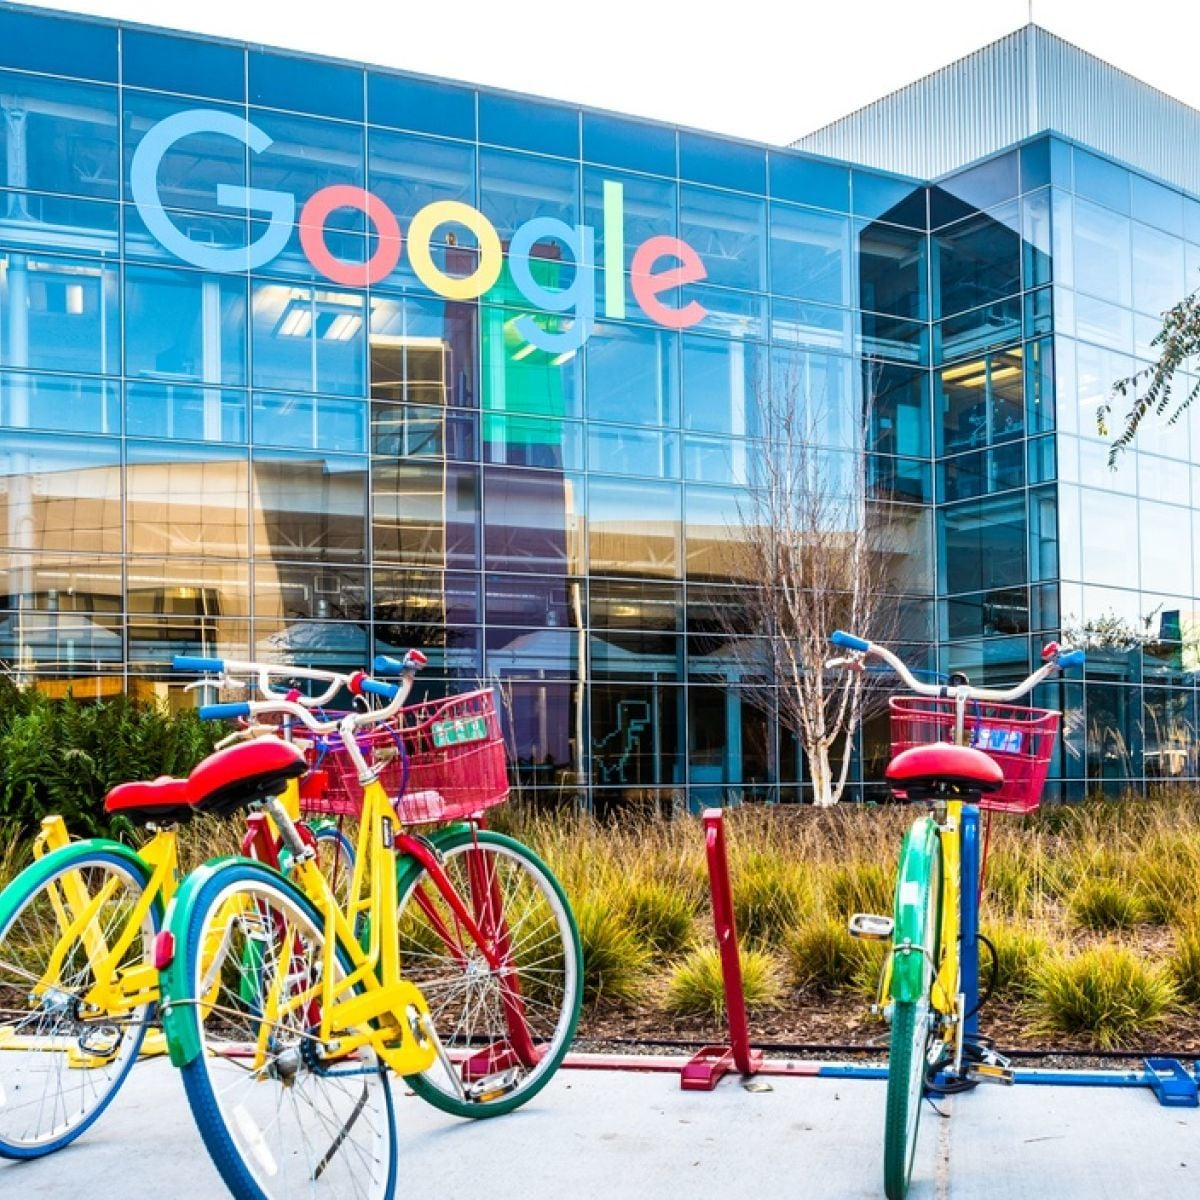 Australian media firms squeeze more from Google as new law looms